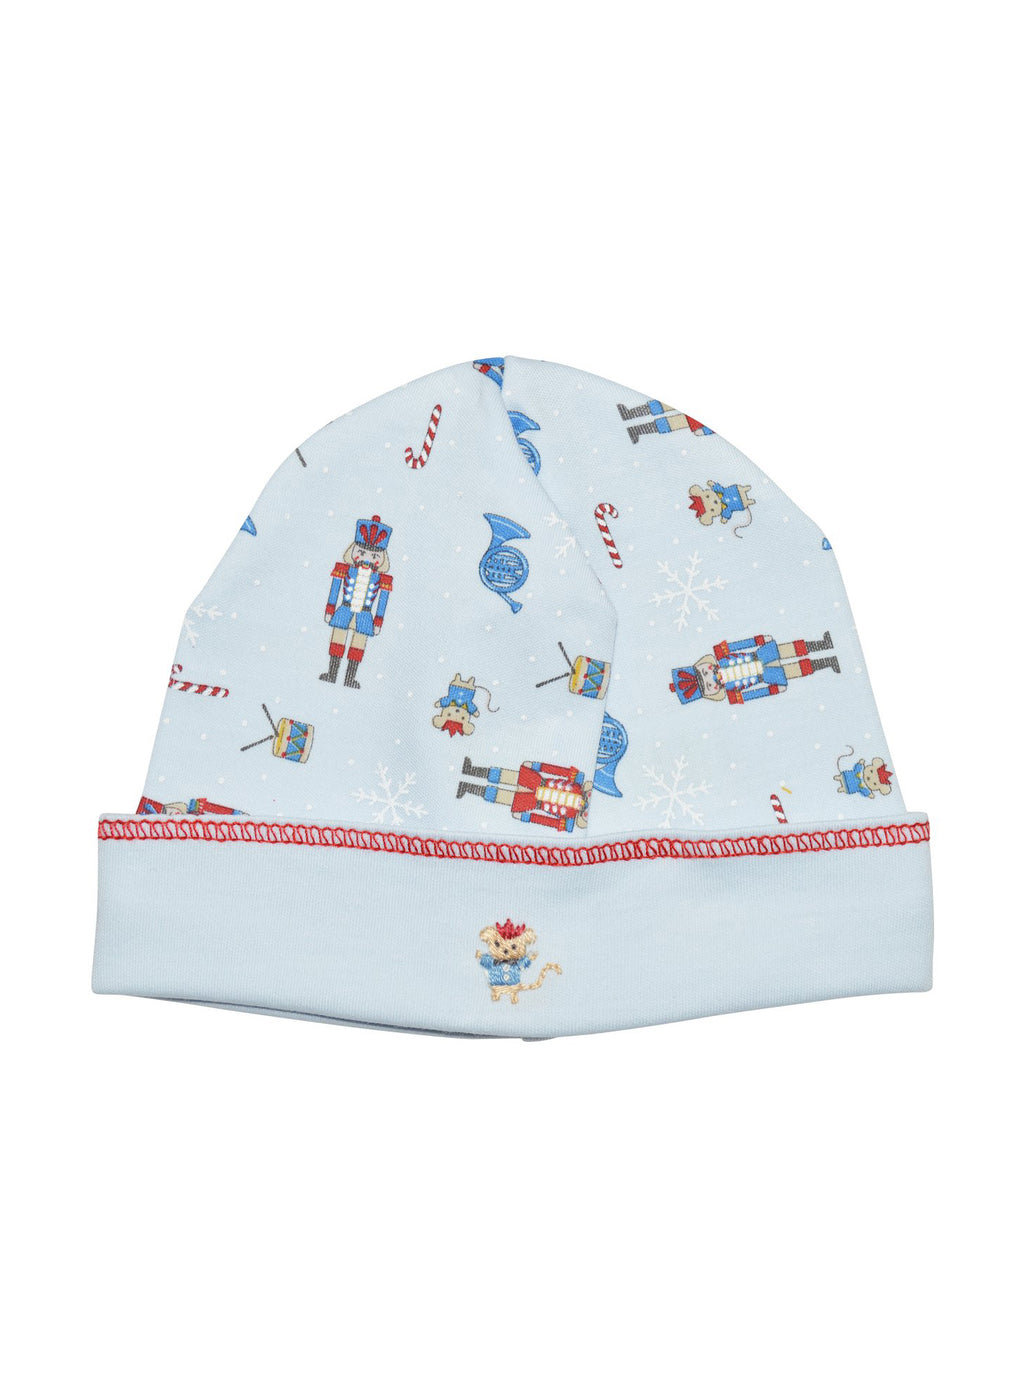 Baby Boy's Blue Christmas Nutcracker Hat - Little Threads Inc. Children's Clothing